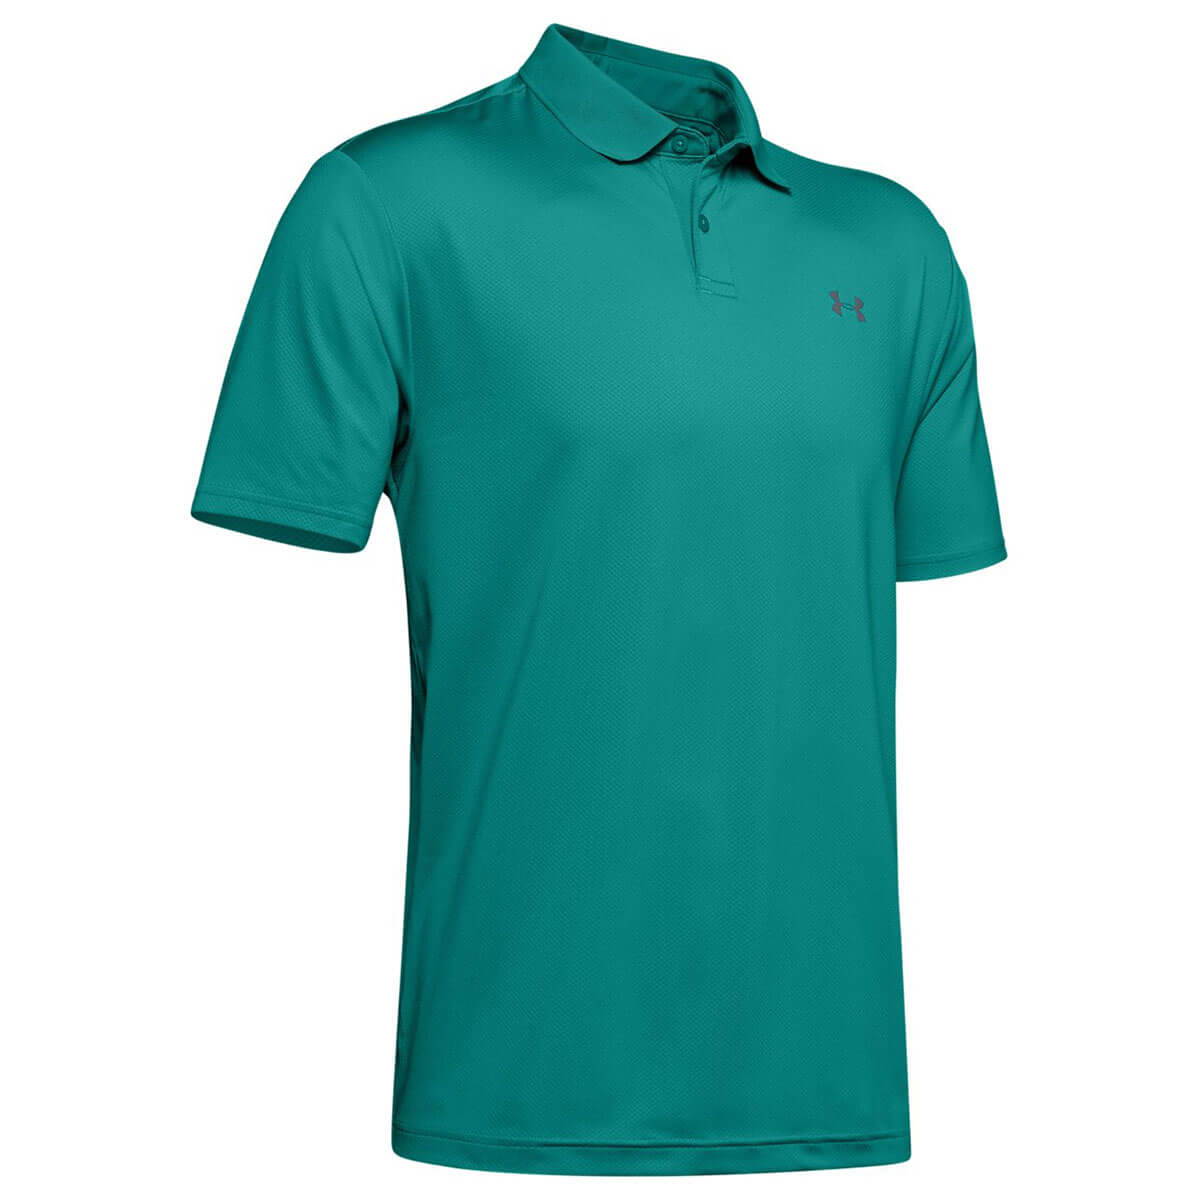 Under-Armour-Mens-2019-Performance-2-0-Stretch-Durable-Smooth-Golf-Polo-Shirt thumbnail 40